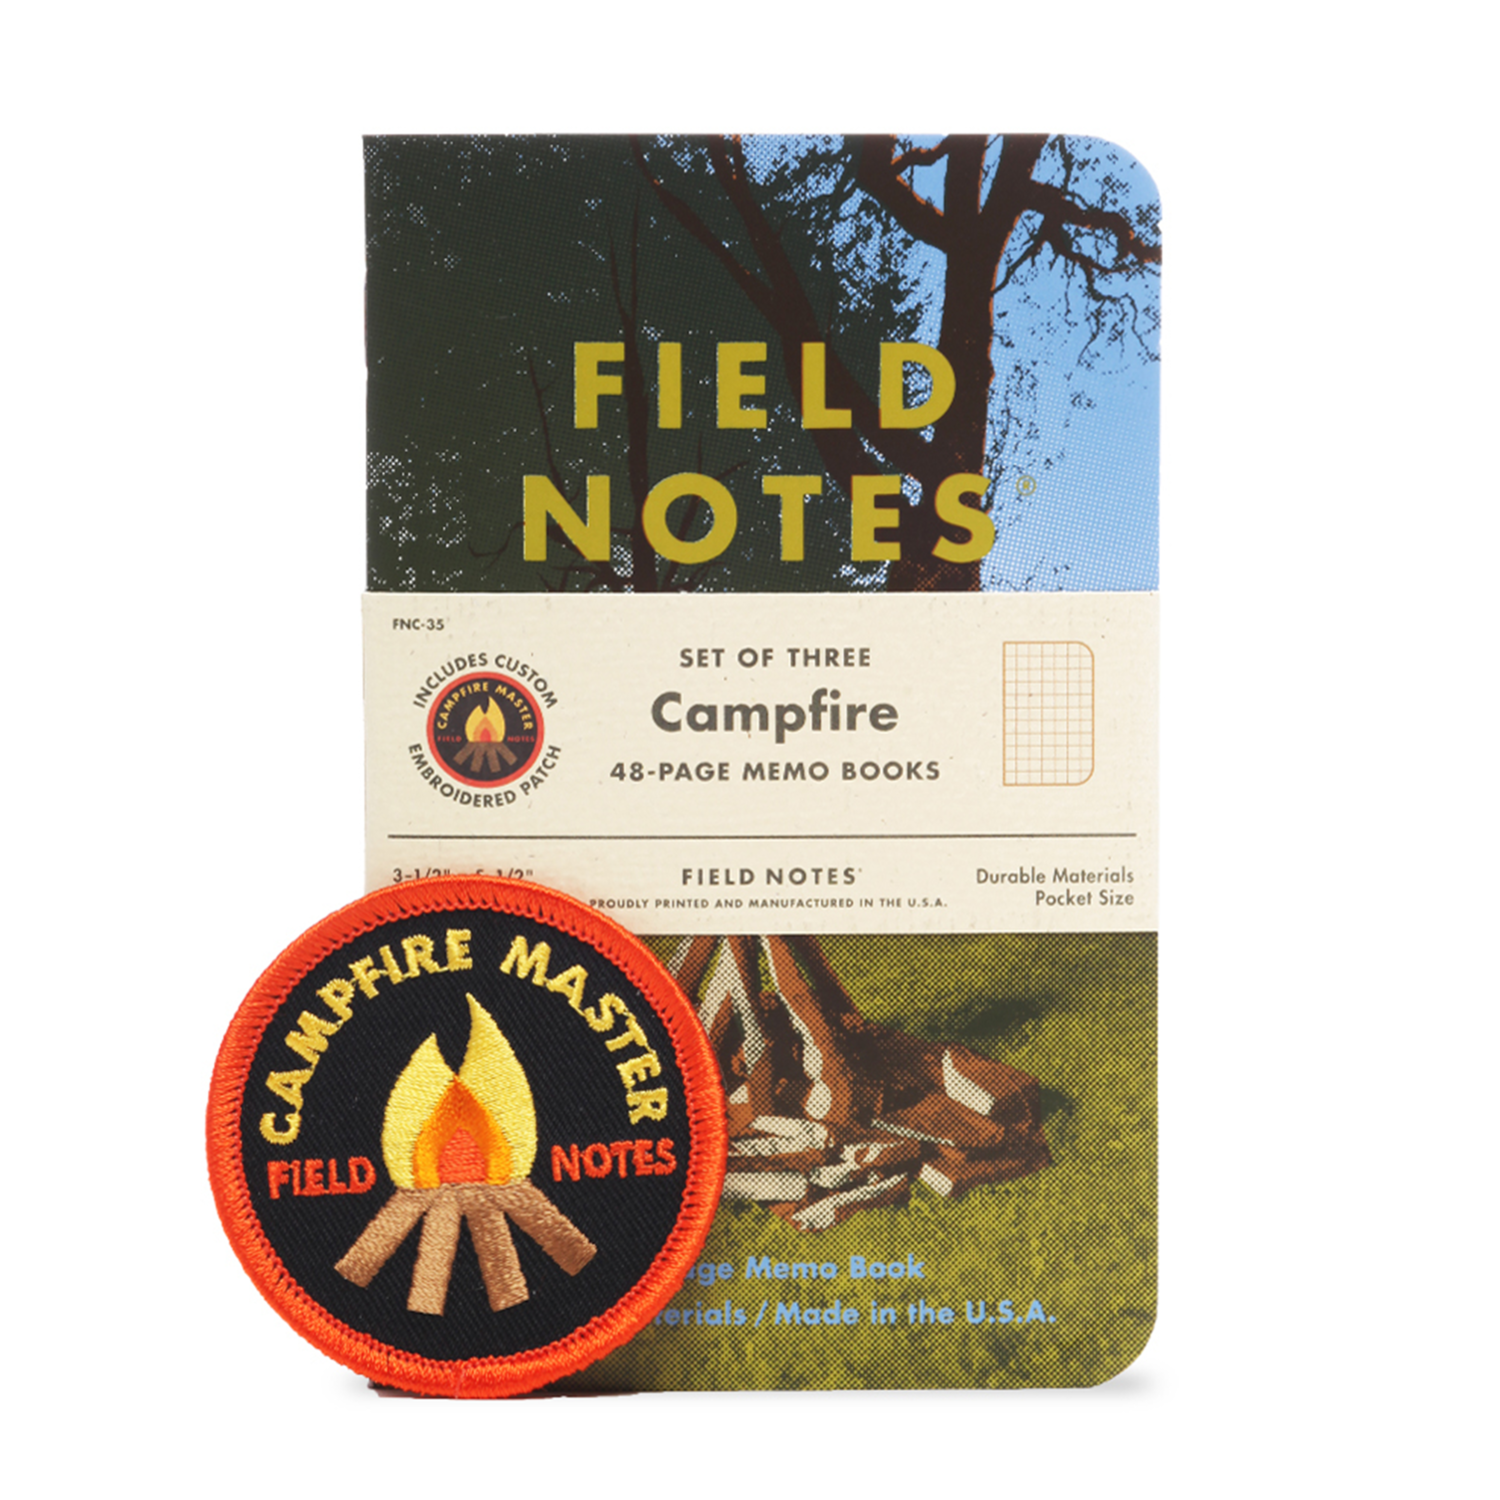 FIELD NOTES CAMP FIRE